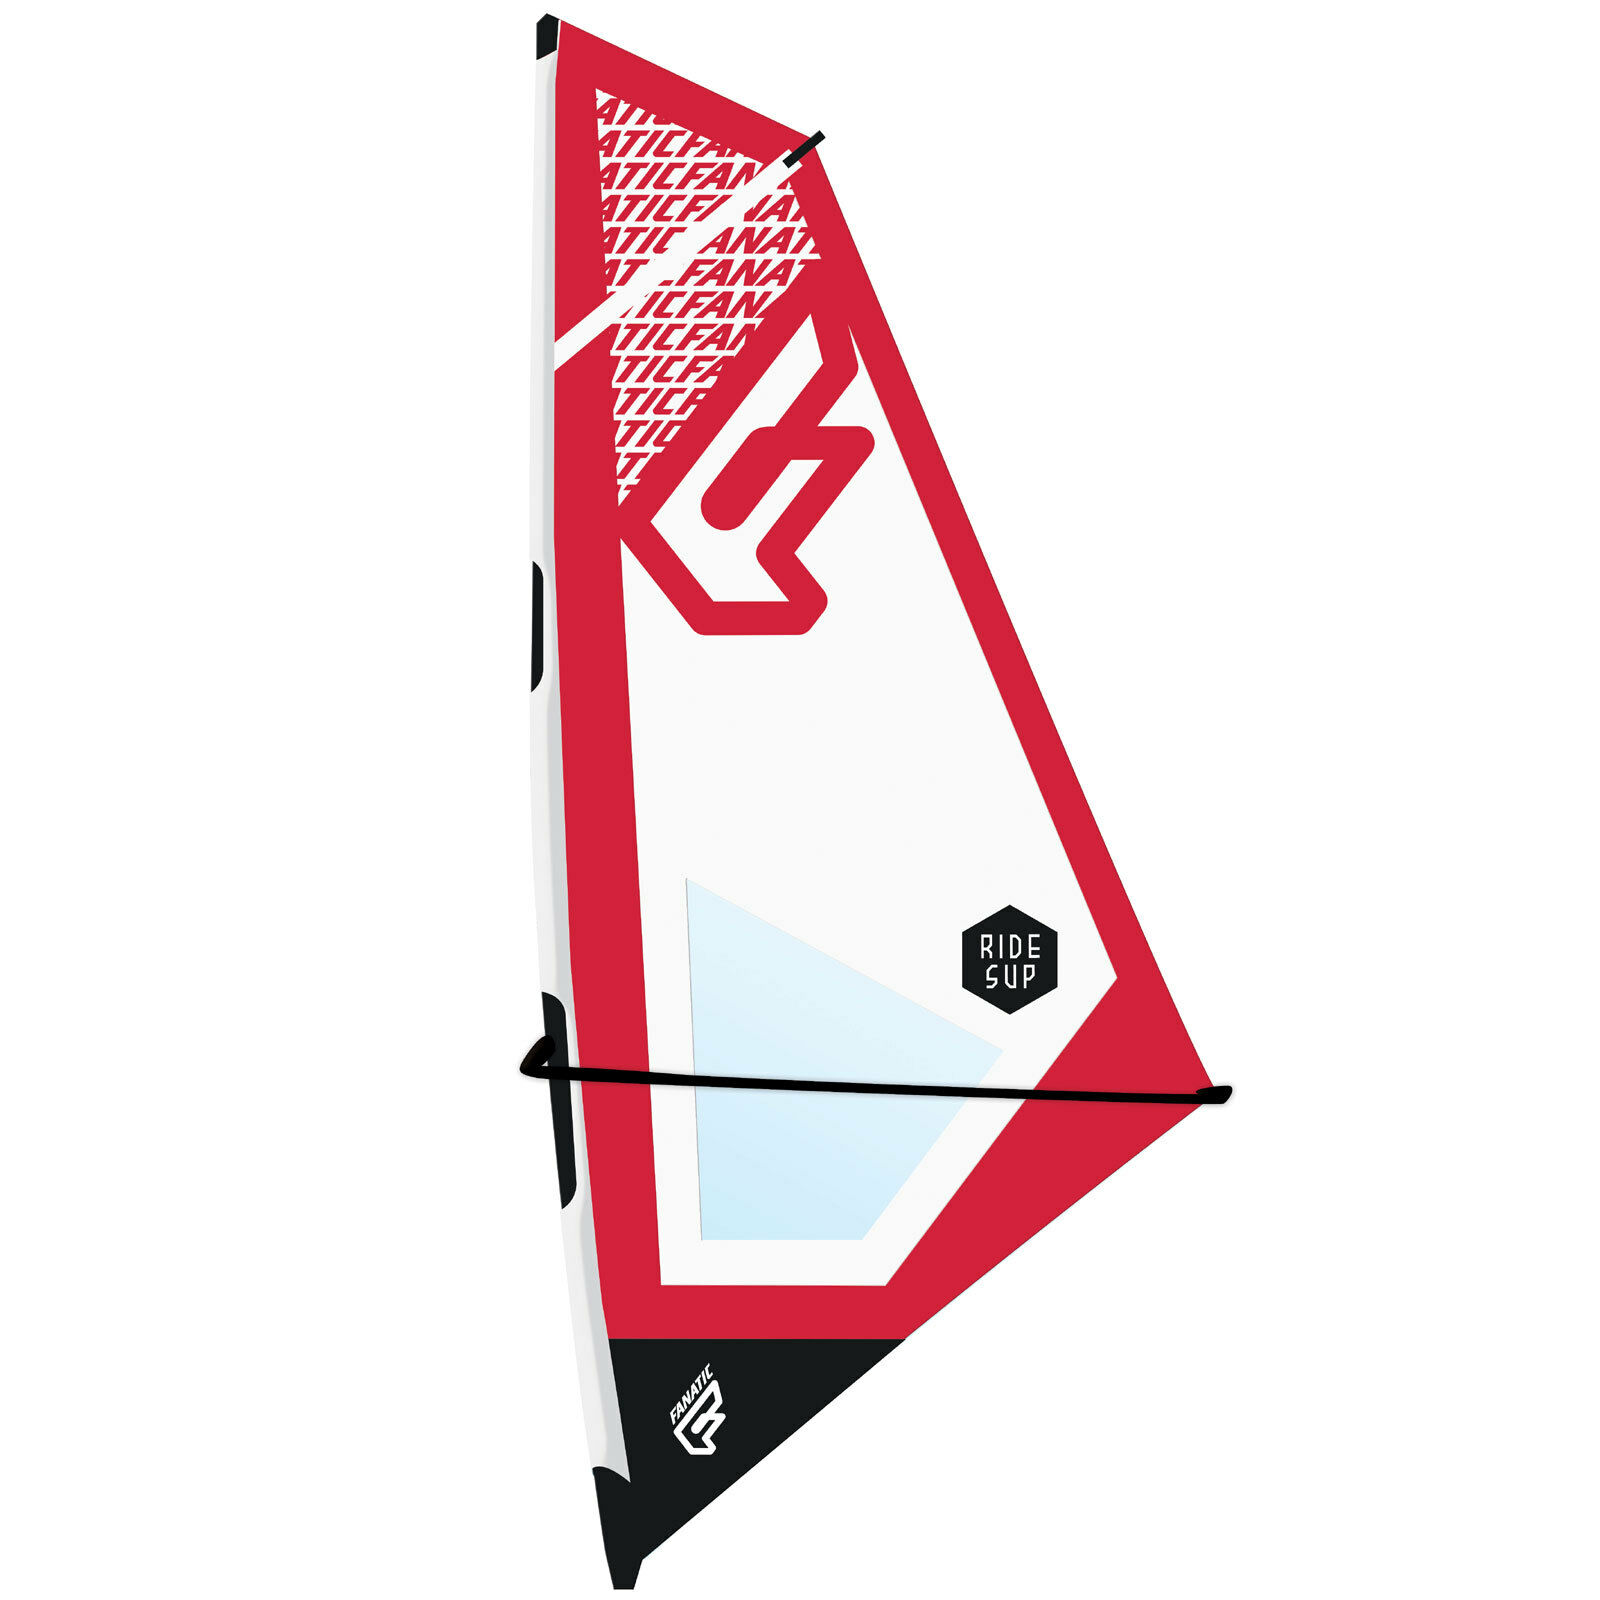 Fanatic Ride sup Rigg windsurf-vela stand up Paddling sup Board surfboard nuevo